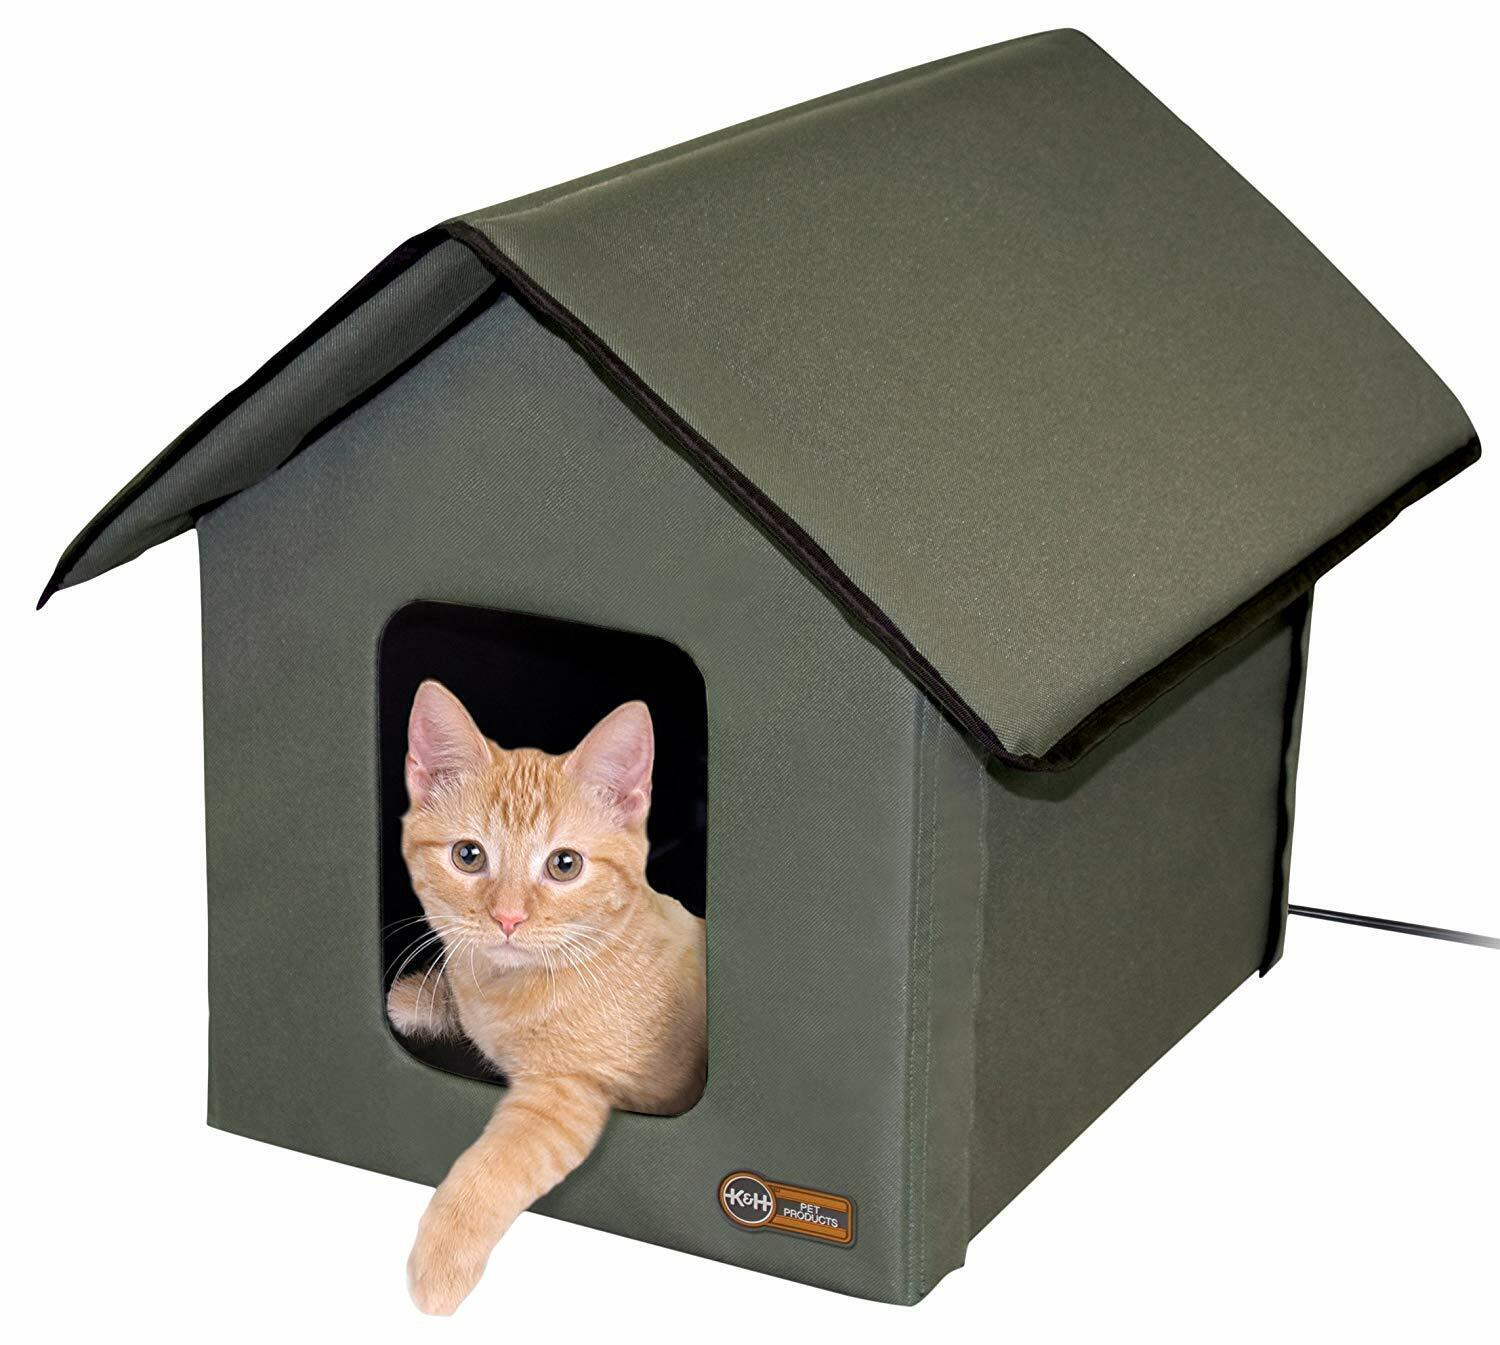 K&H Pet Products Outdoor Kitty House Cat Shelter Heated